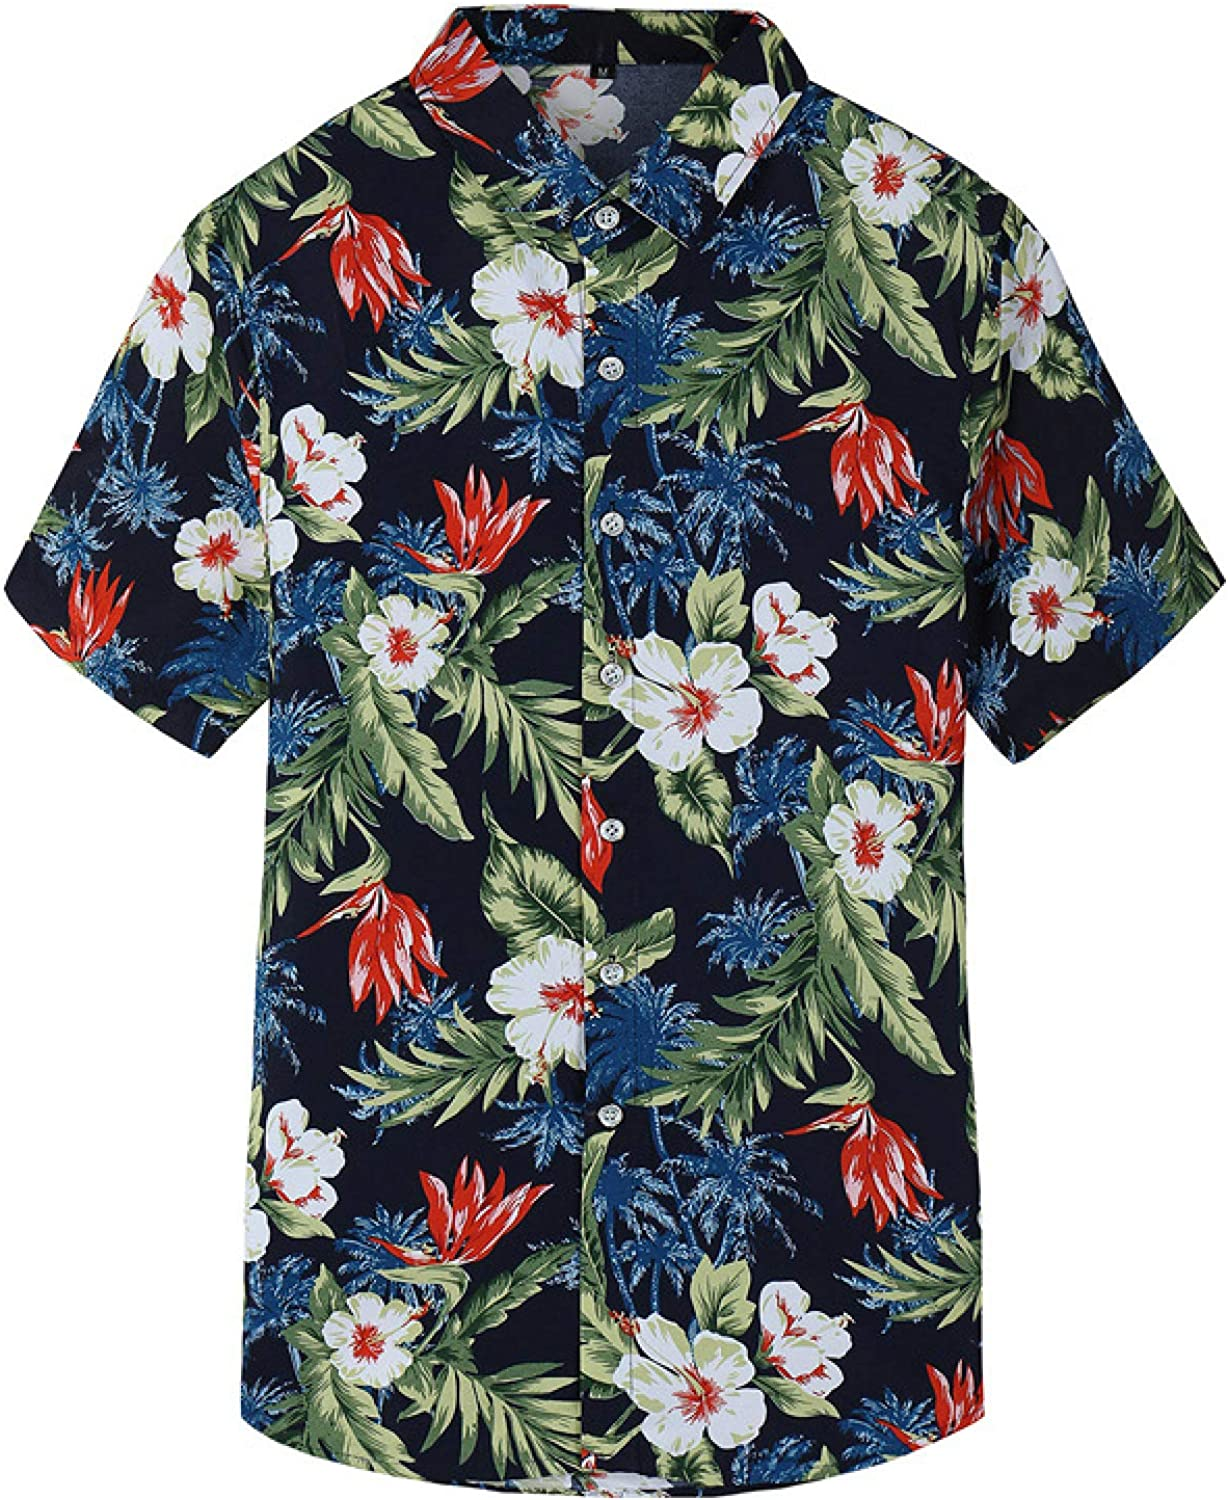 Luandge Men's Personality Printed Al sold out. Flower Large Size Shirt Super popular specialty store Trend